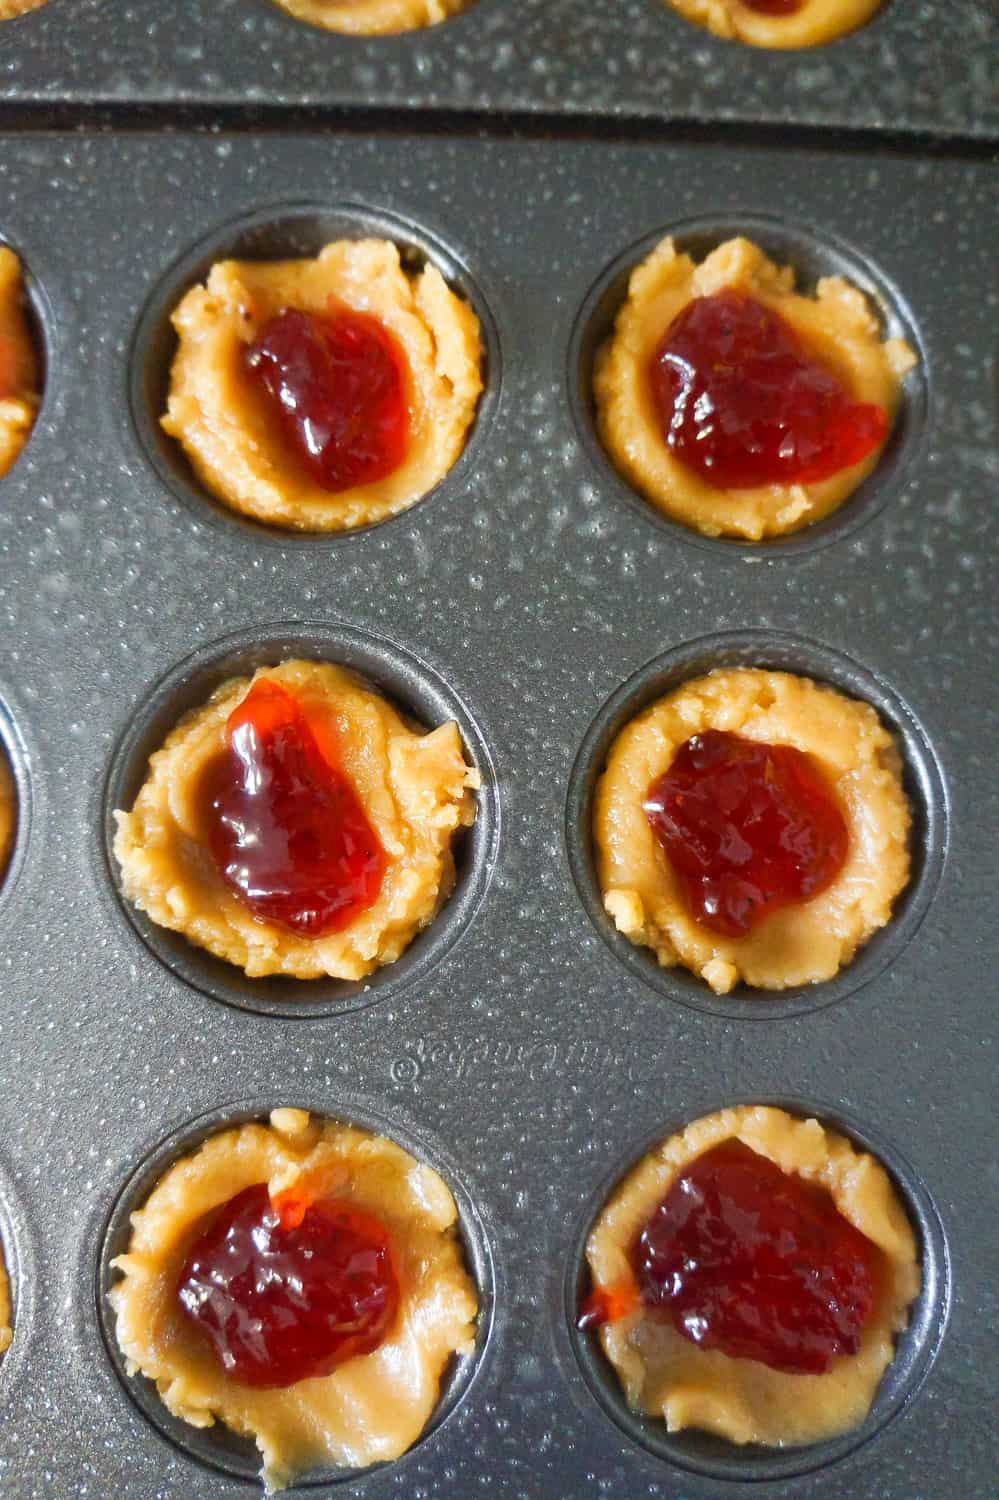 uncooked peanut butter and jelly blondie bites